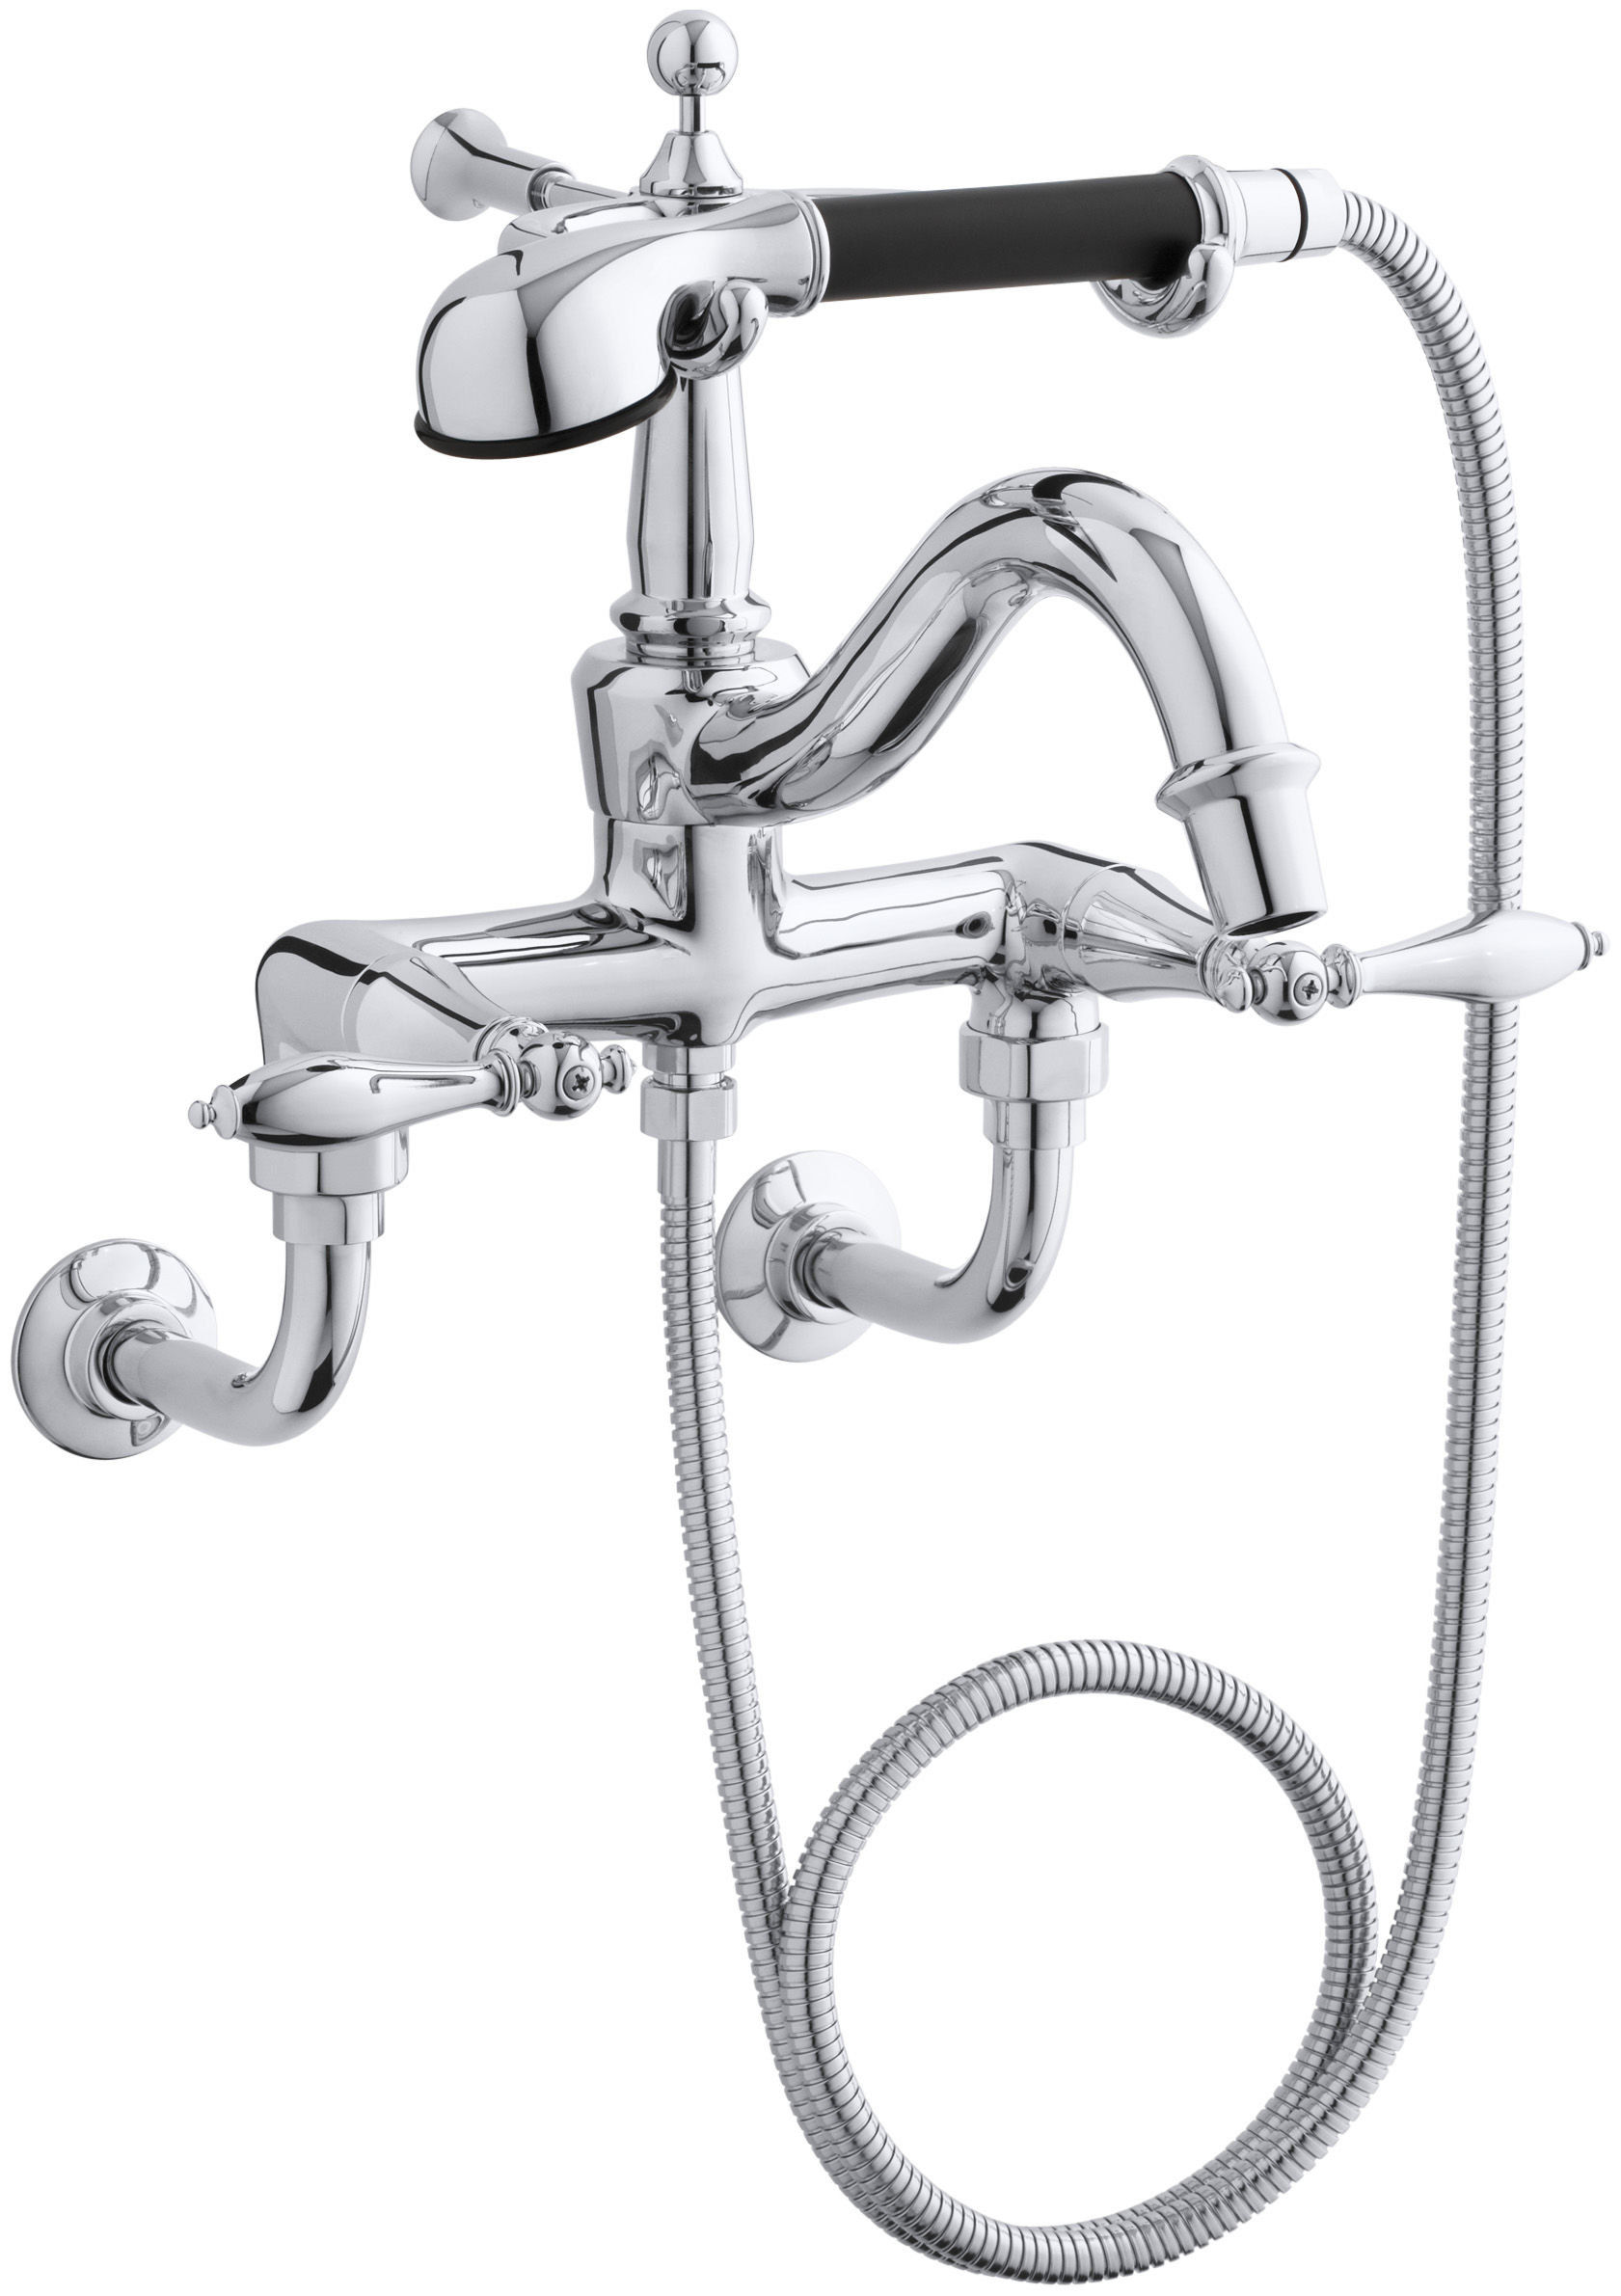 Kohler K-331-4M-CP Polished Chrome Double Handle Wall ... on mobile home bathroom mirrors, mobile home door handles, mobile home door locks, mobile home hand rails, residential shower handles, mobile home faucets, hotel shower handles, commercial shower handles, contemporary shower handles, rv shower handles, mobile home toilet, apartment shower handles, mobile home bathroom accessories, mobile home sinks,